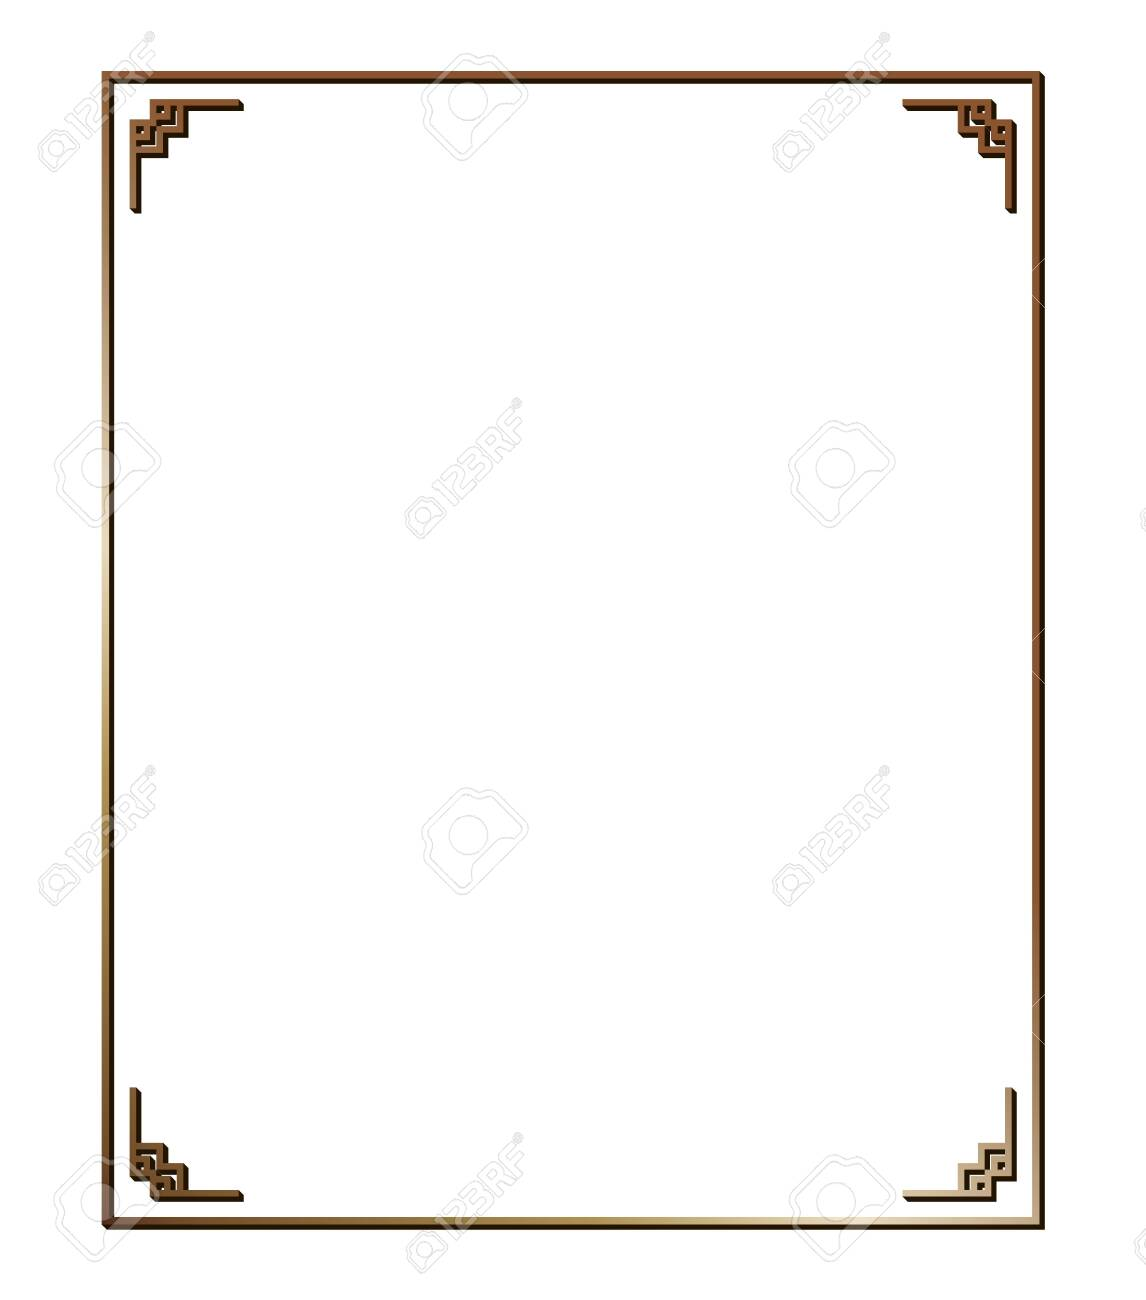 Vector illustration of art deco borders and frames. Creative pattern in the style of the 1920s for your design. - 146736084